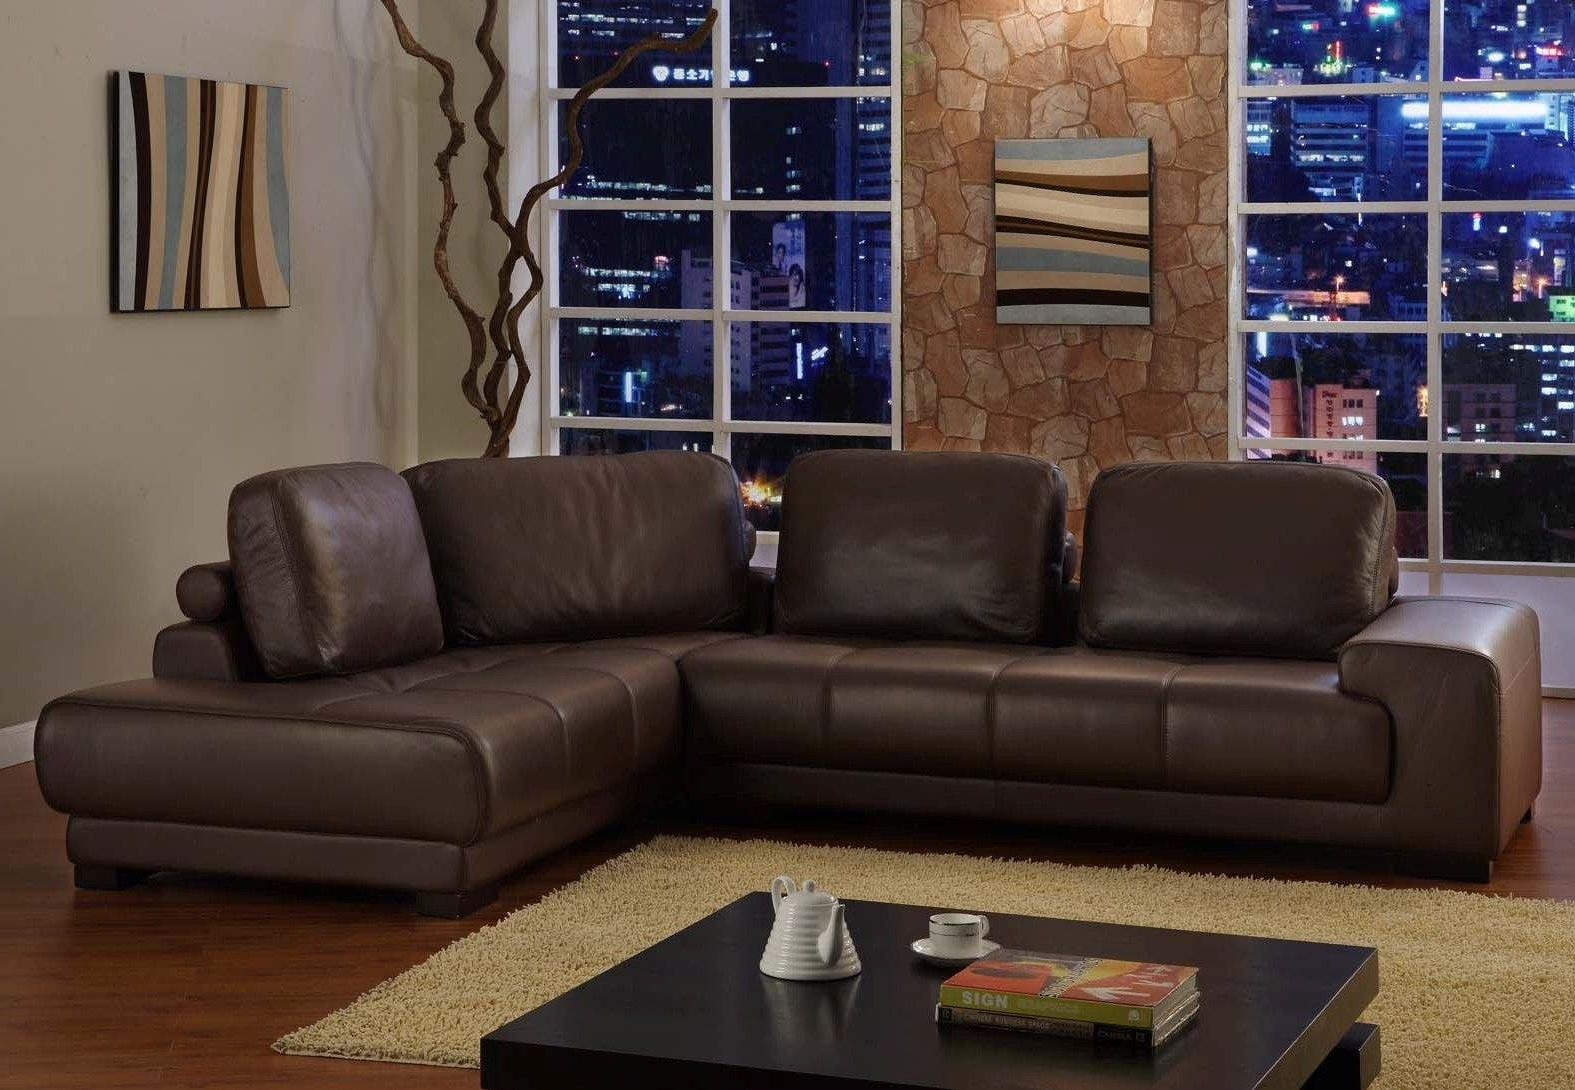 Best And Newest High Quality Sectional Sofas Throughout Sectional Sofa Clearance: The Best Way To Get High Quality Sofa In (View 3 of 20)